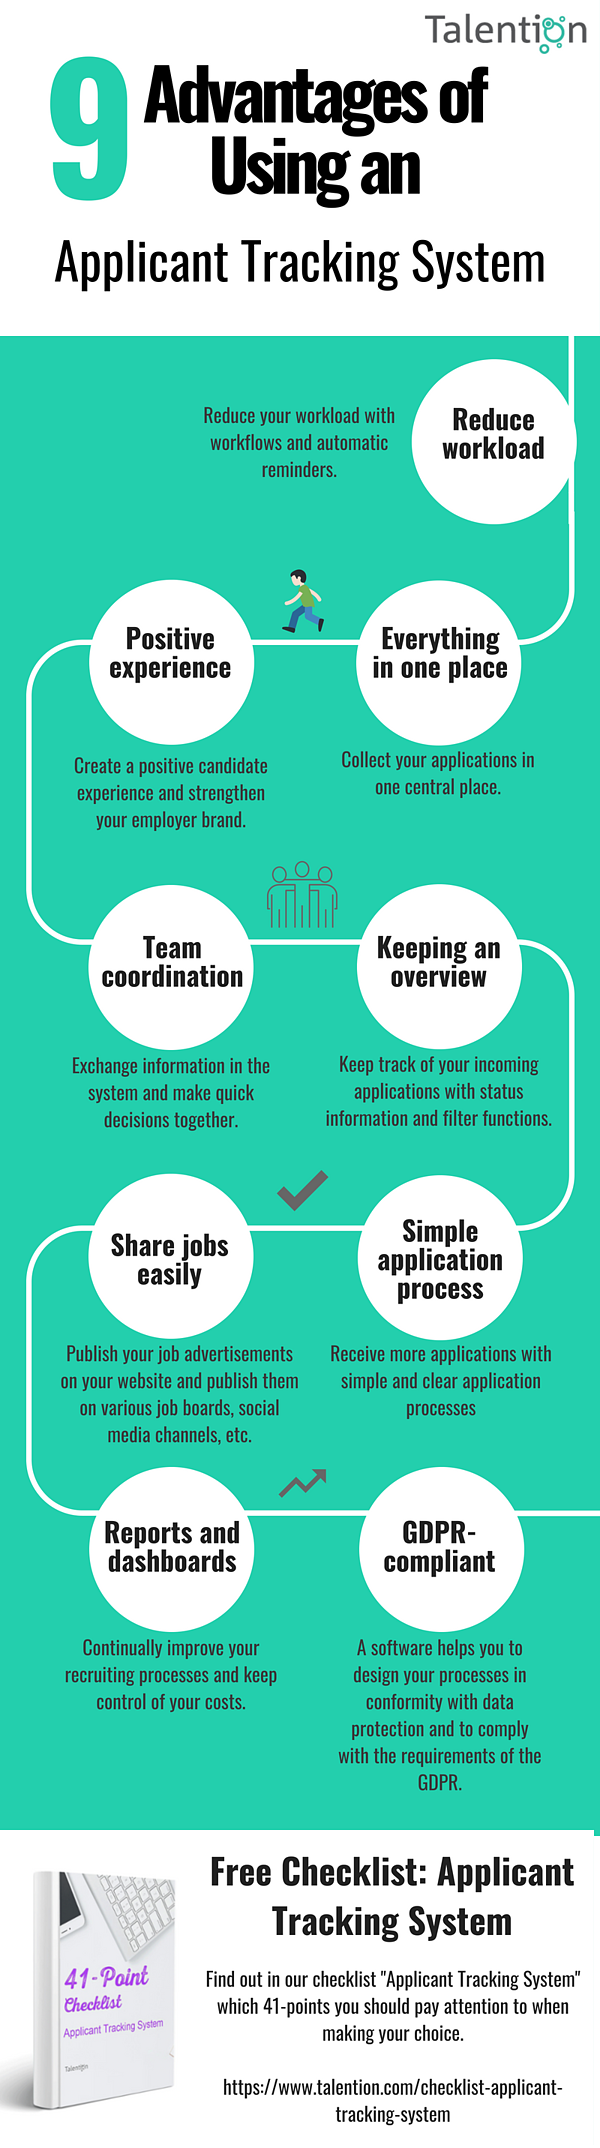 fographic: 9 Advantages of Using an Applicant Tracking Software